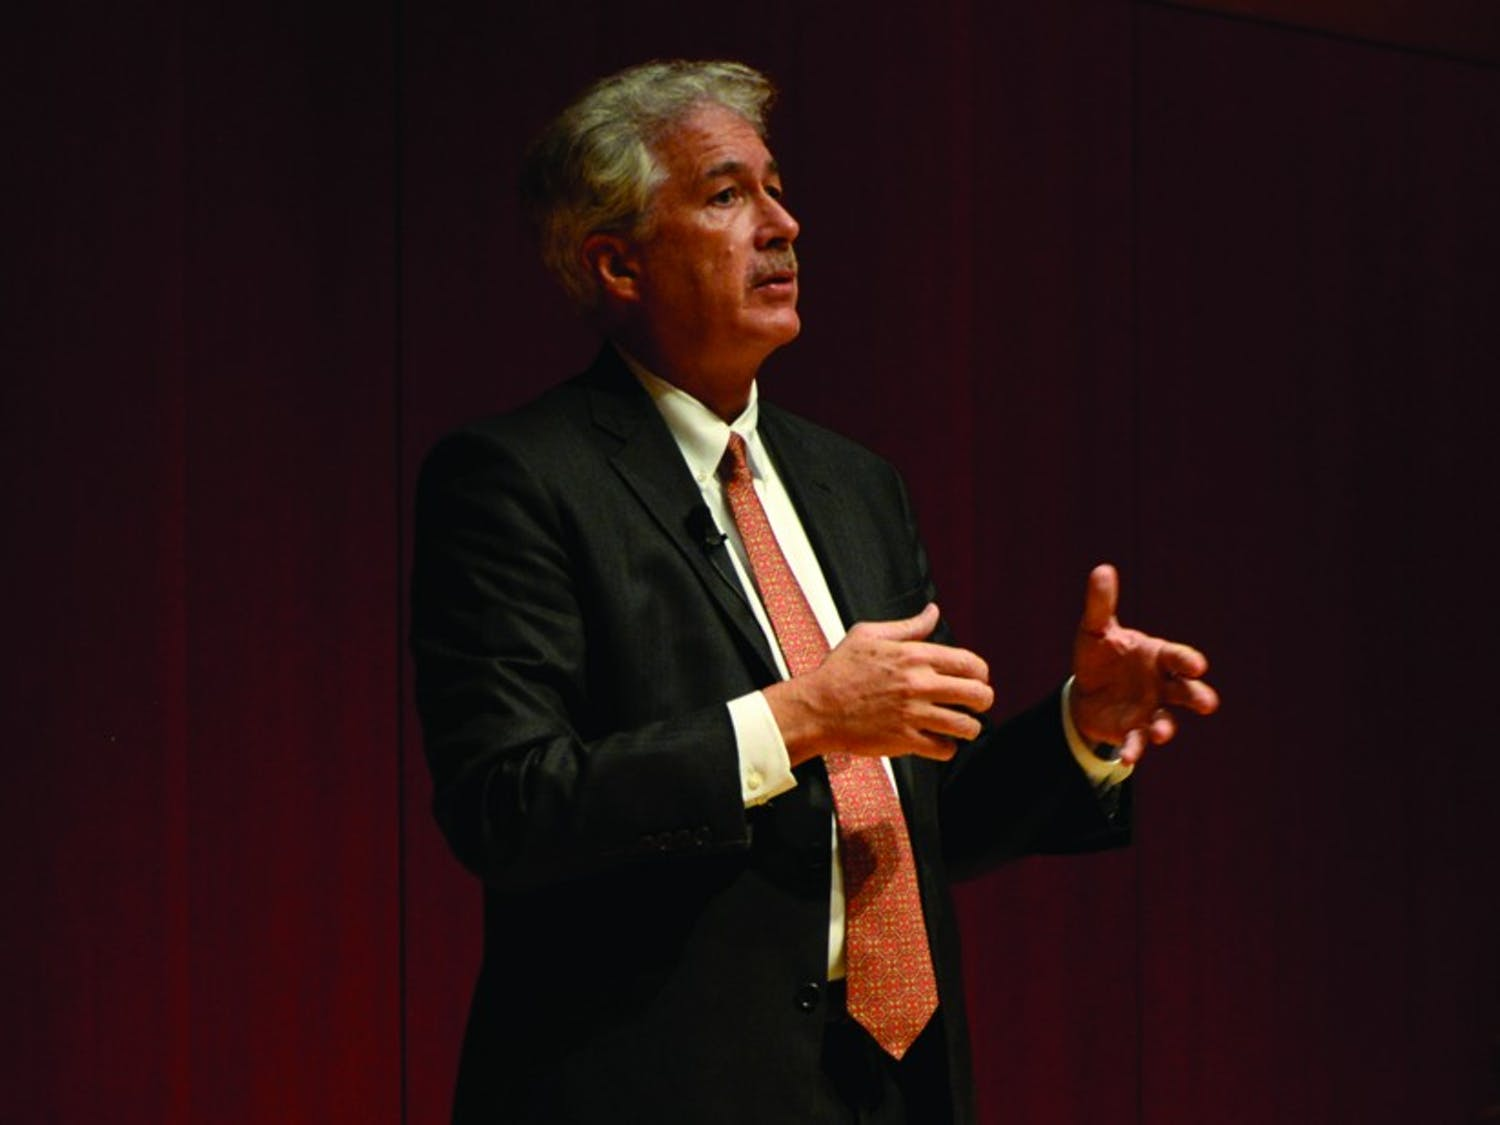 William Burns, the former ambassador to Russia and Jordan, discussed foreign policy challenges for the U.S. Tuesday.